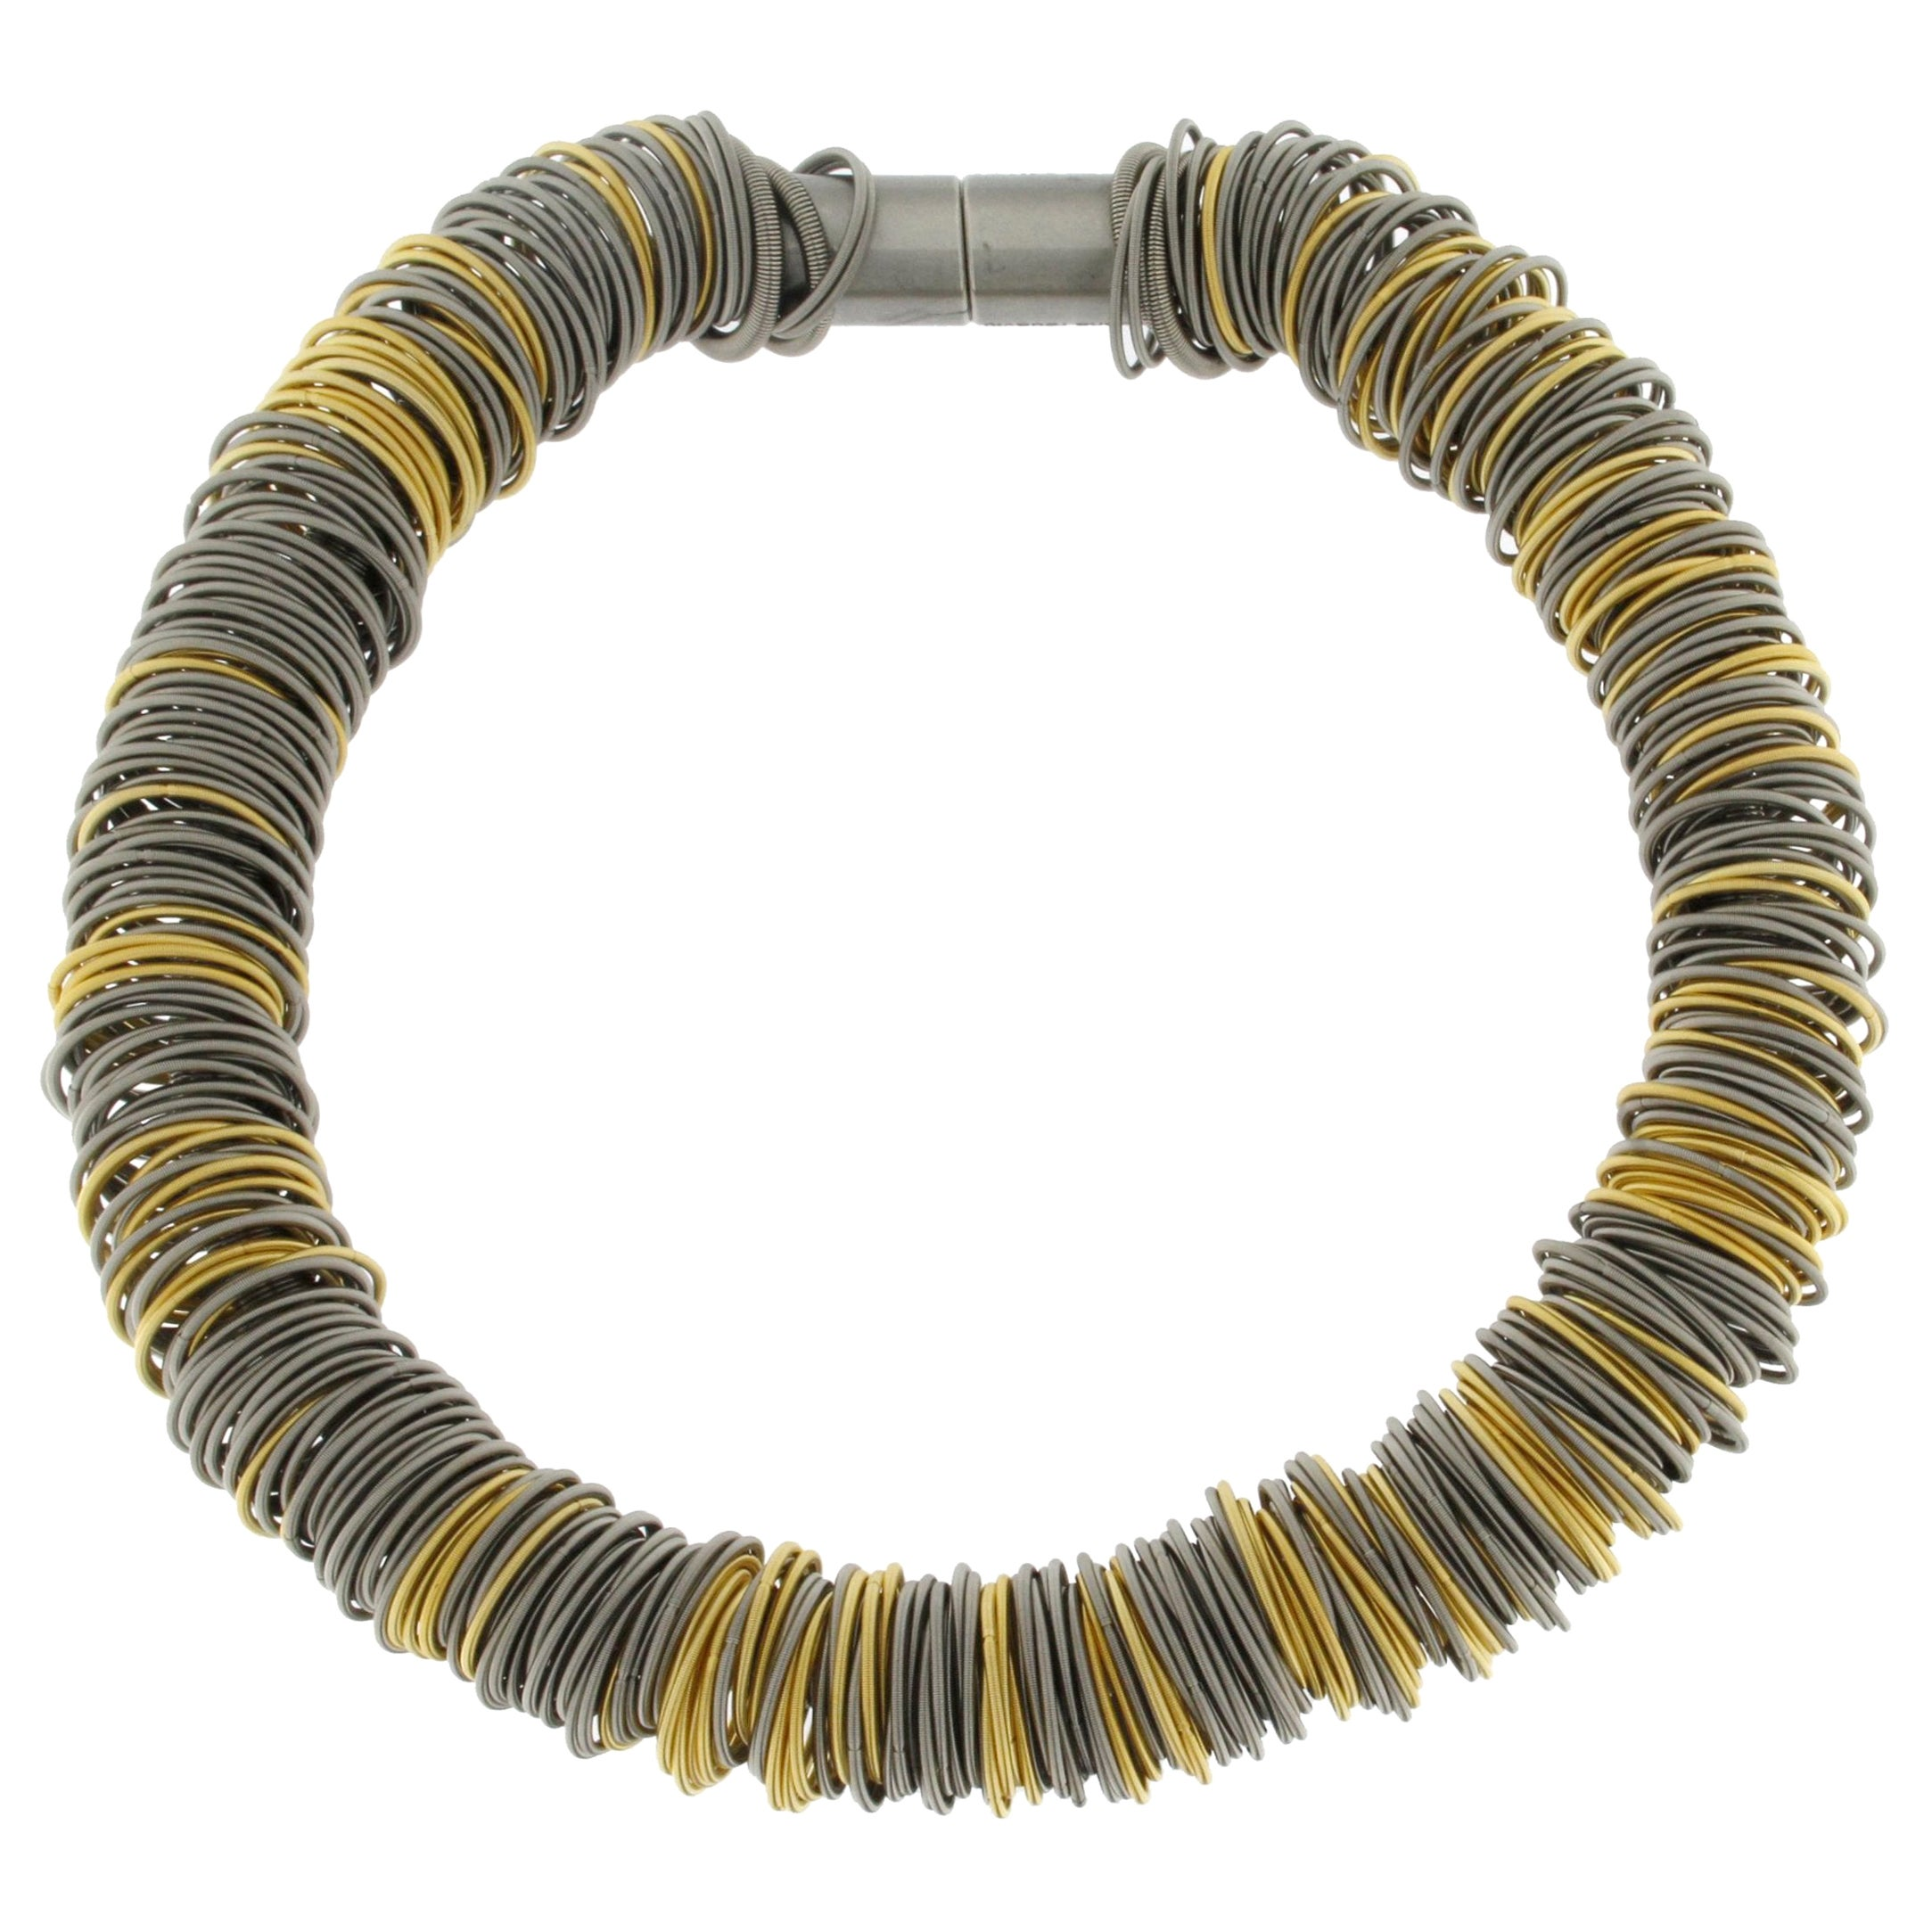 Maxi One Stainless Steel and Gold-Plated Stainless Steel Necklace